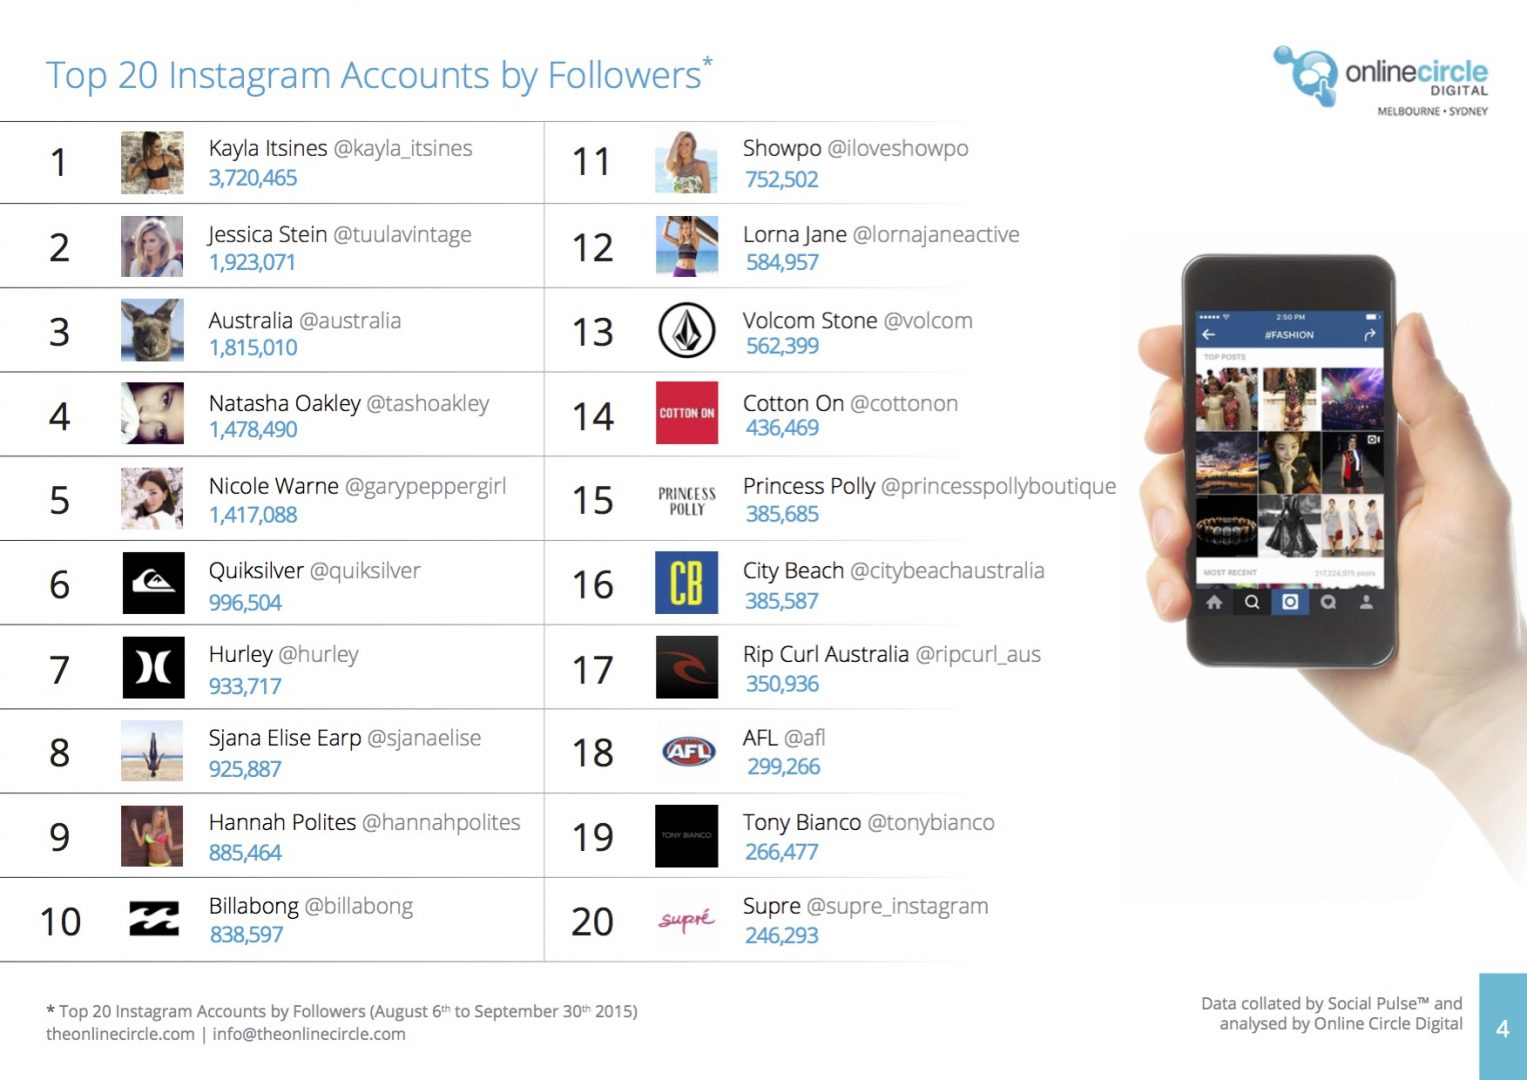 Top 20 Instagram Accounts by Followers